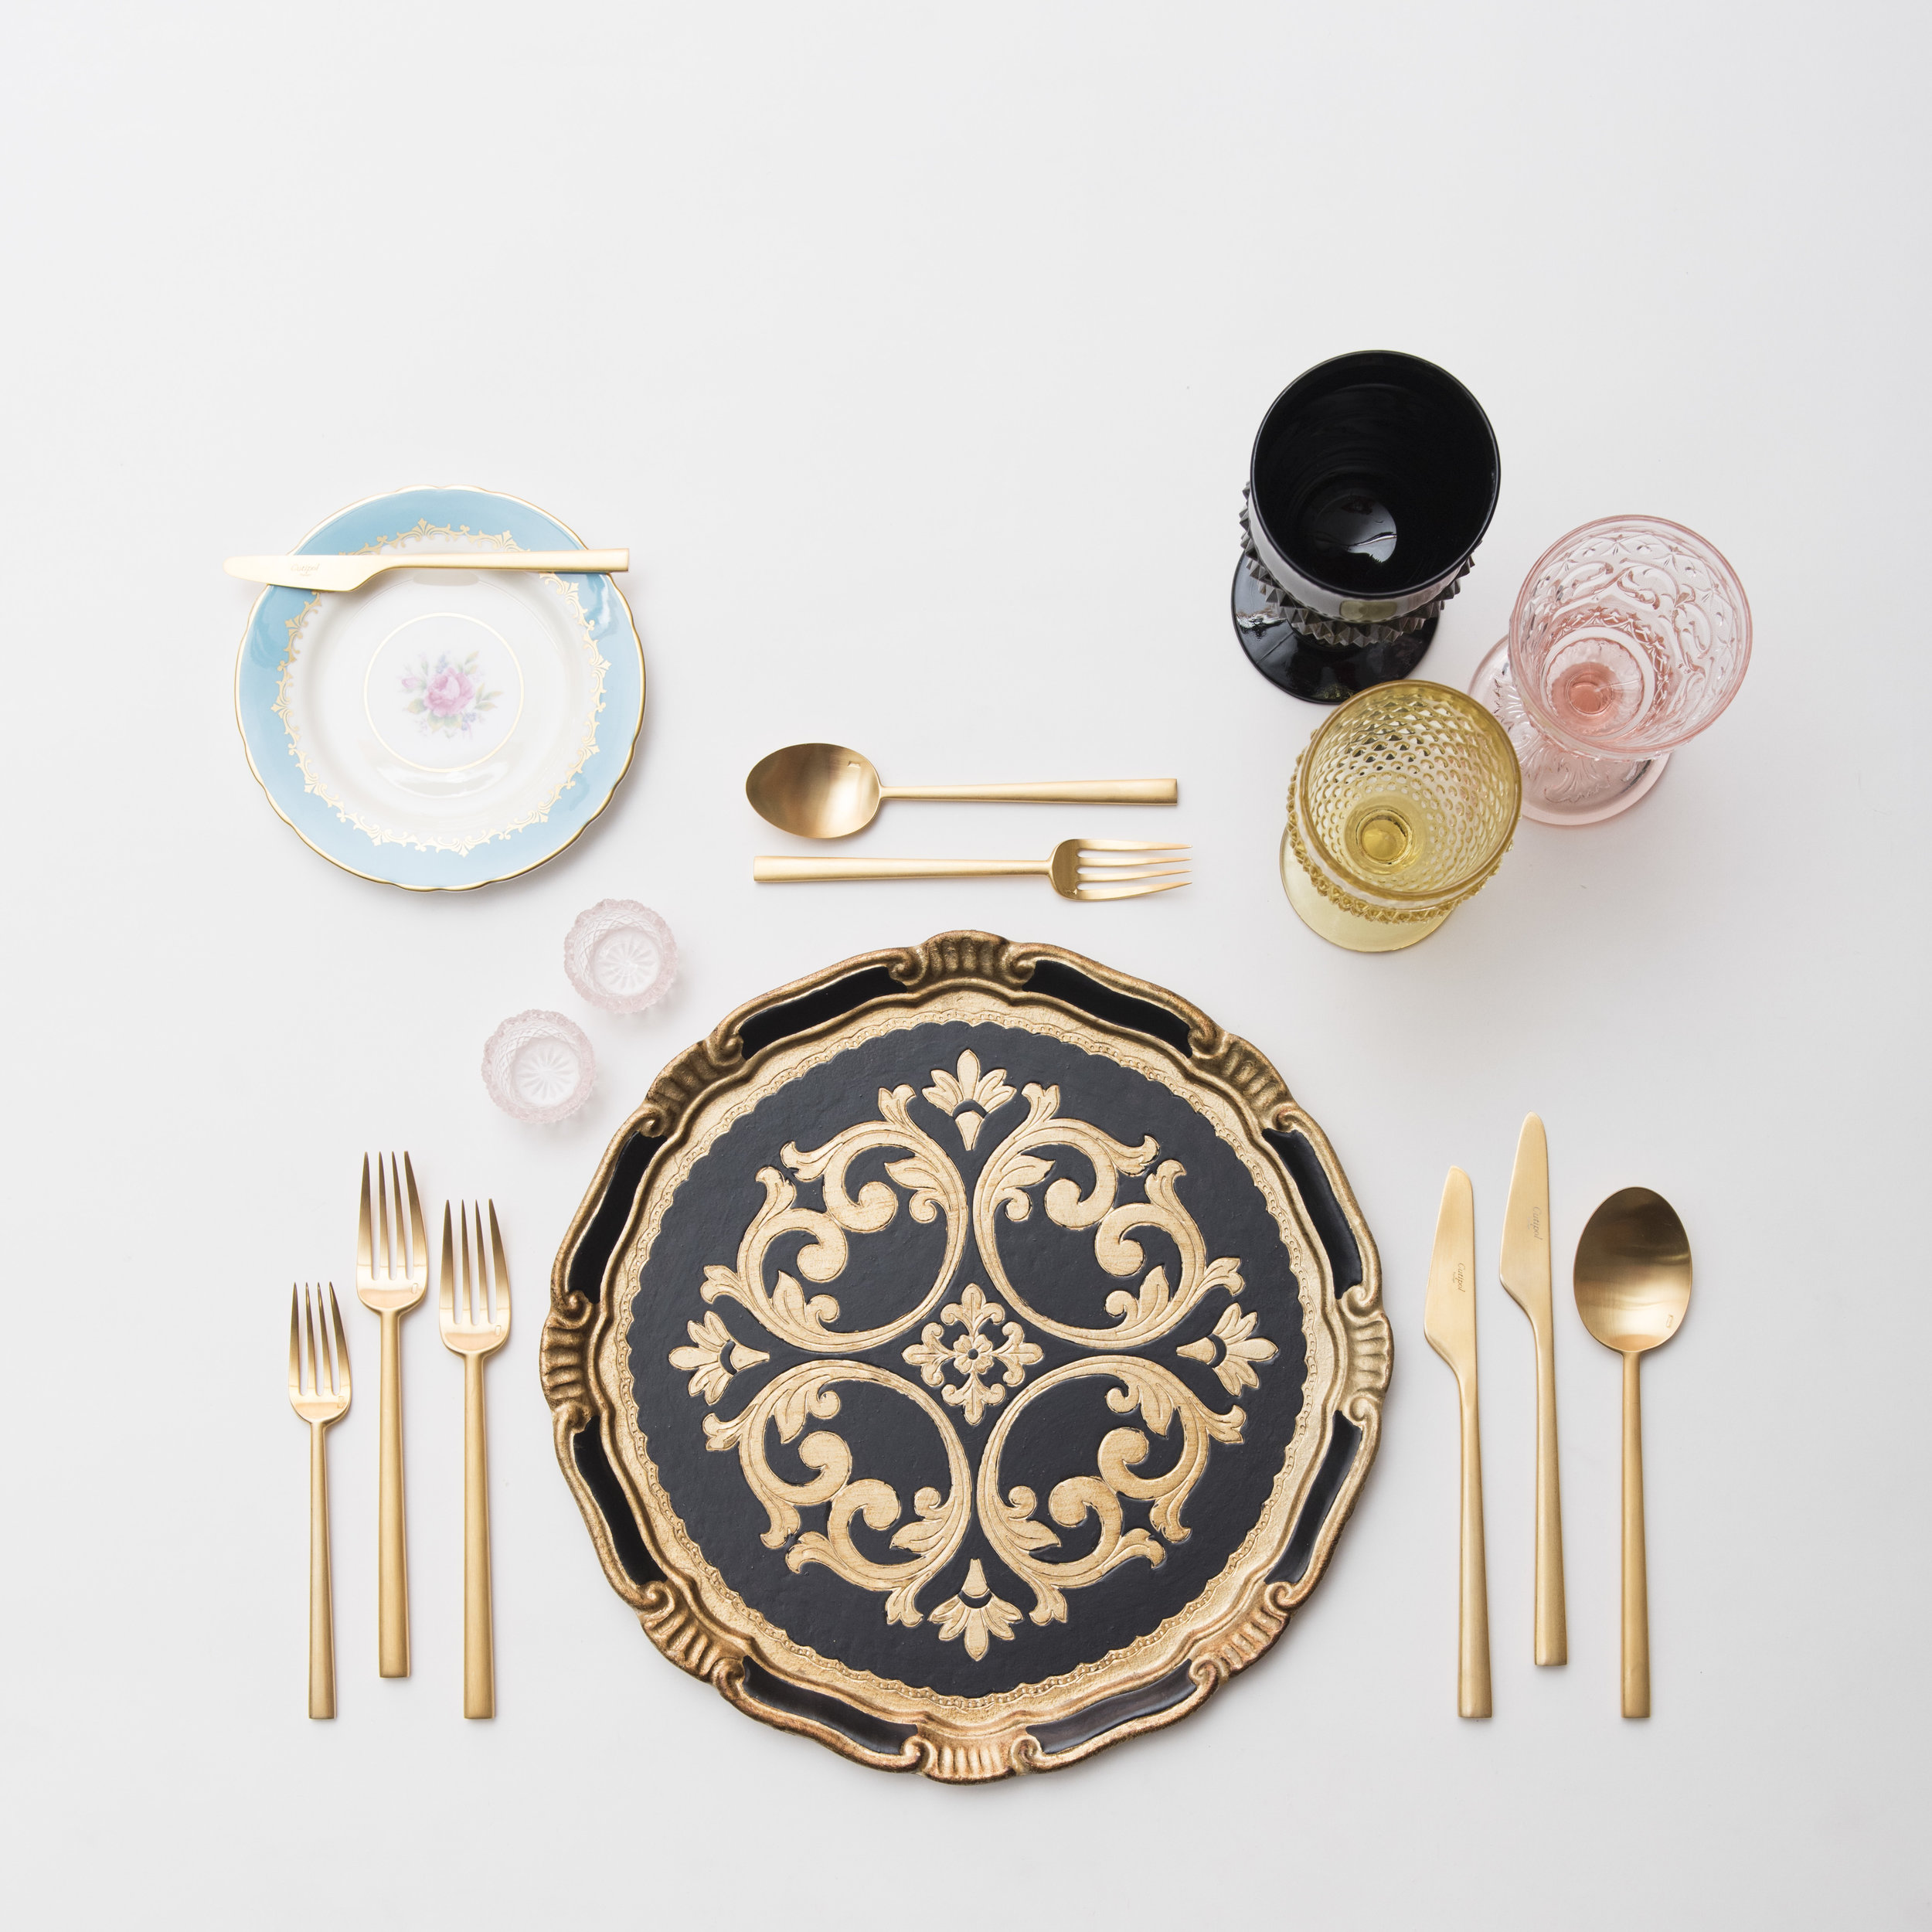 RENT: Florentine Chargers in Black/Gold + Blue Botanicals Vintage China + Rondo Flatware in Brushed 24k Gold + Black/Pink/Yellow Vintage Goblets + Pink Crystal Salt Cellars  SHOP: Florentine Chargers in Black/Gold + Rondo Flatware in Brushed 24k Gold